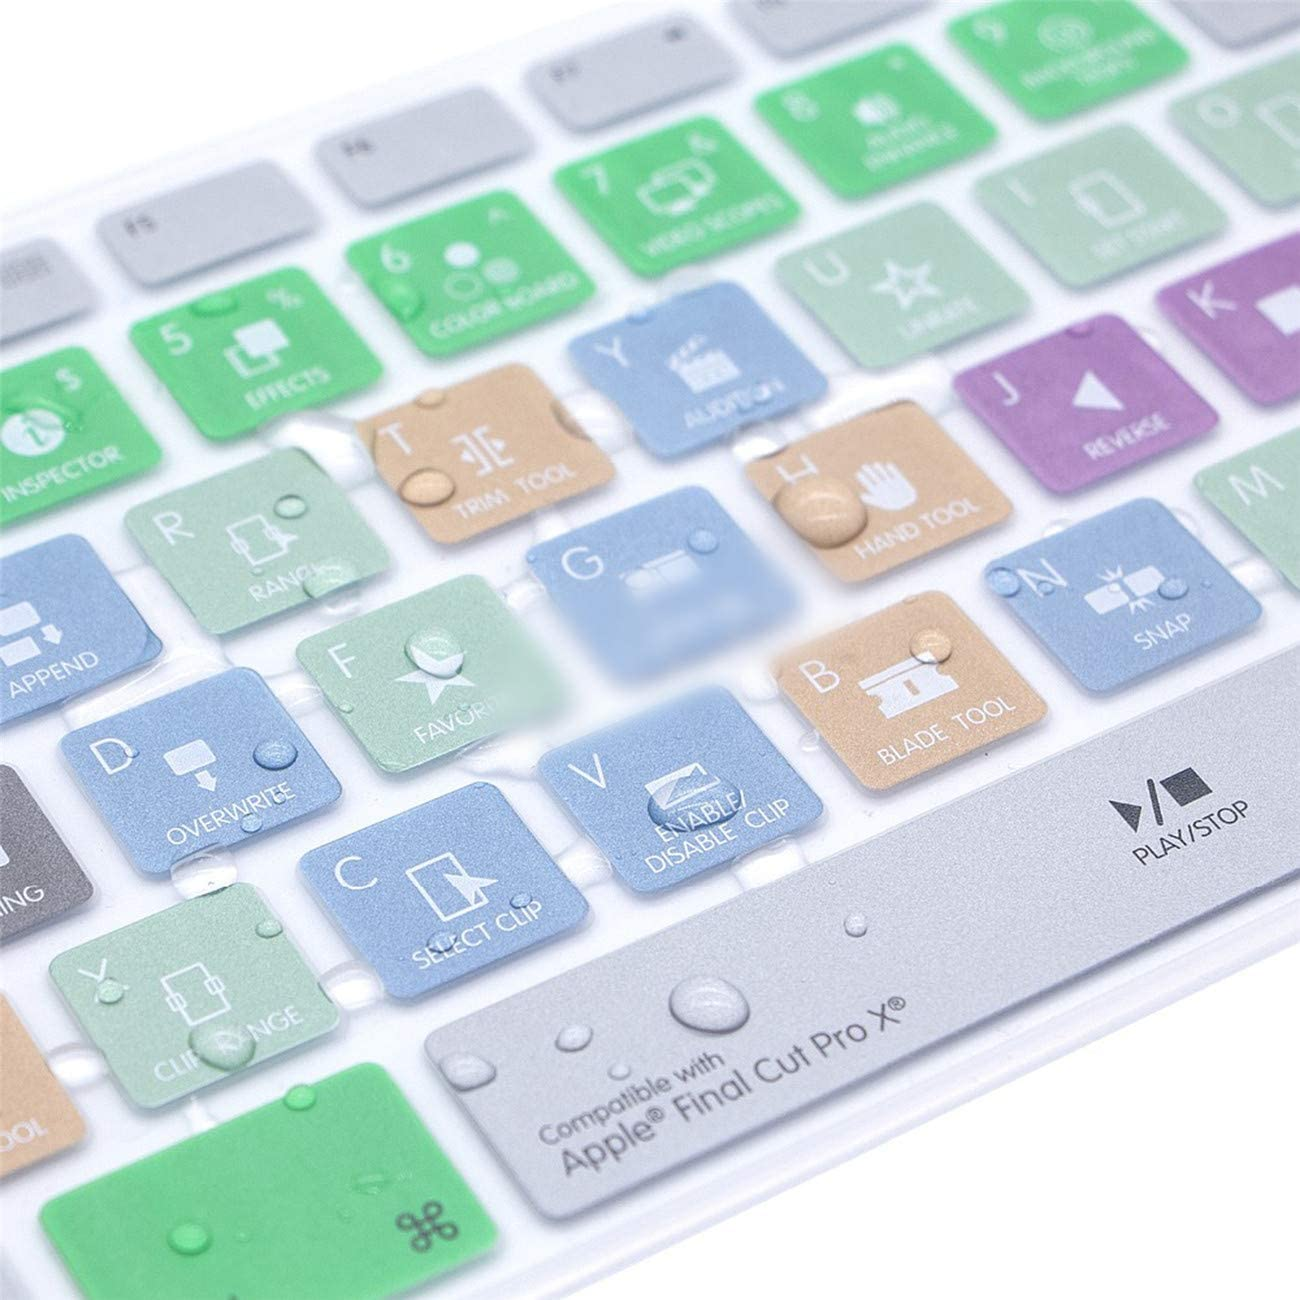 Final Cut Pro X Hot Keys Design Keyboard Cover Skin for Keyboard with Numeric Keypad Wired USB for iMac G6 Desktop Pc Wired